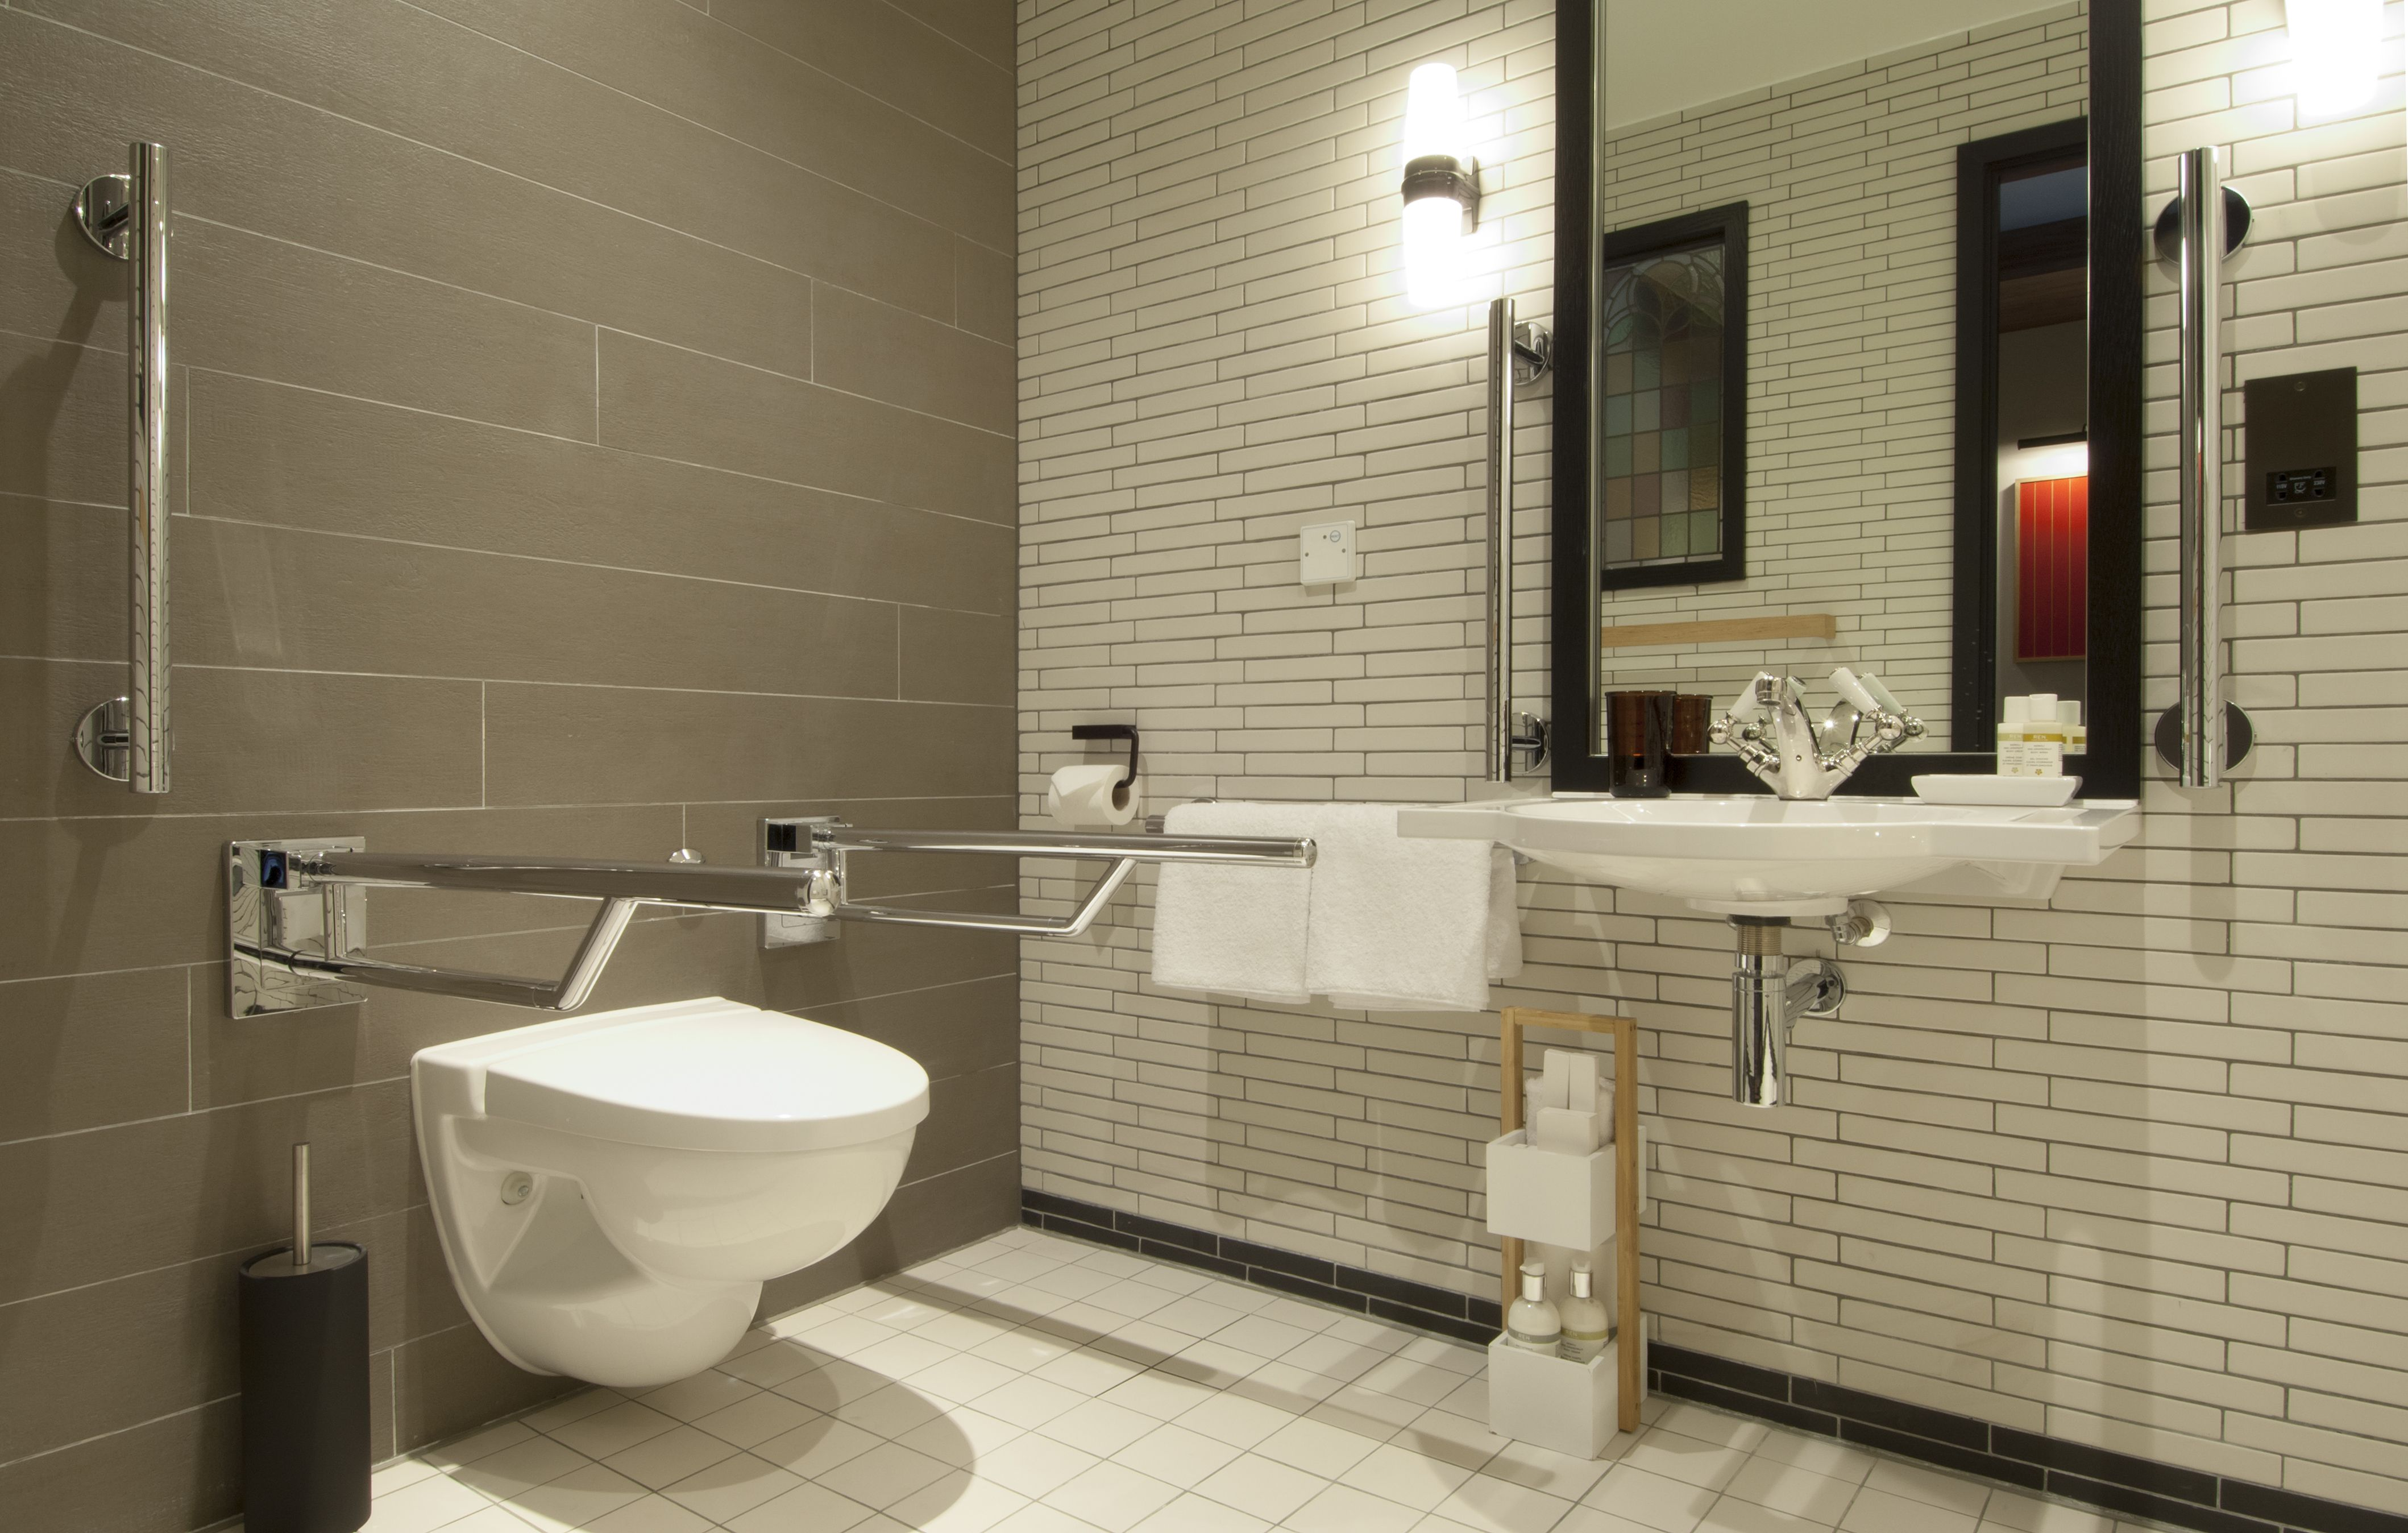 Accessible Hotel Design  Universal design bathroom, Disabled